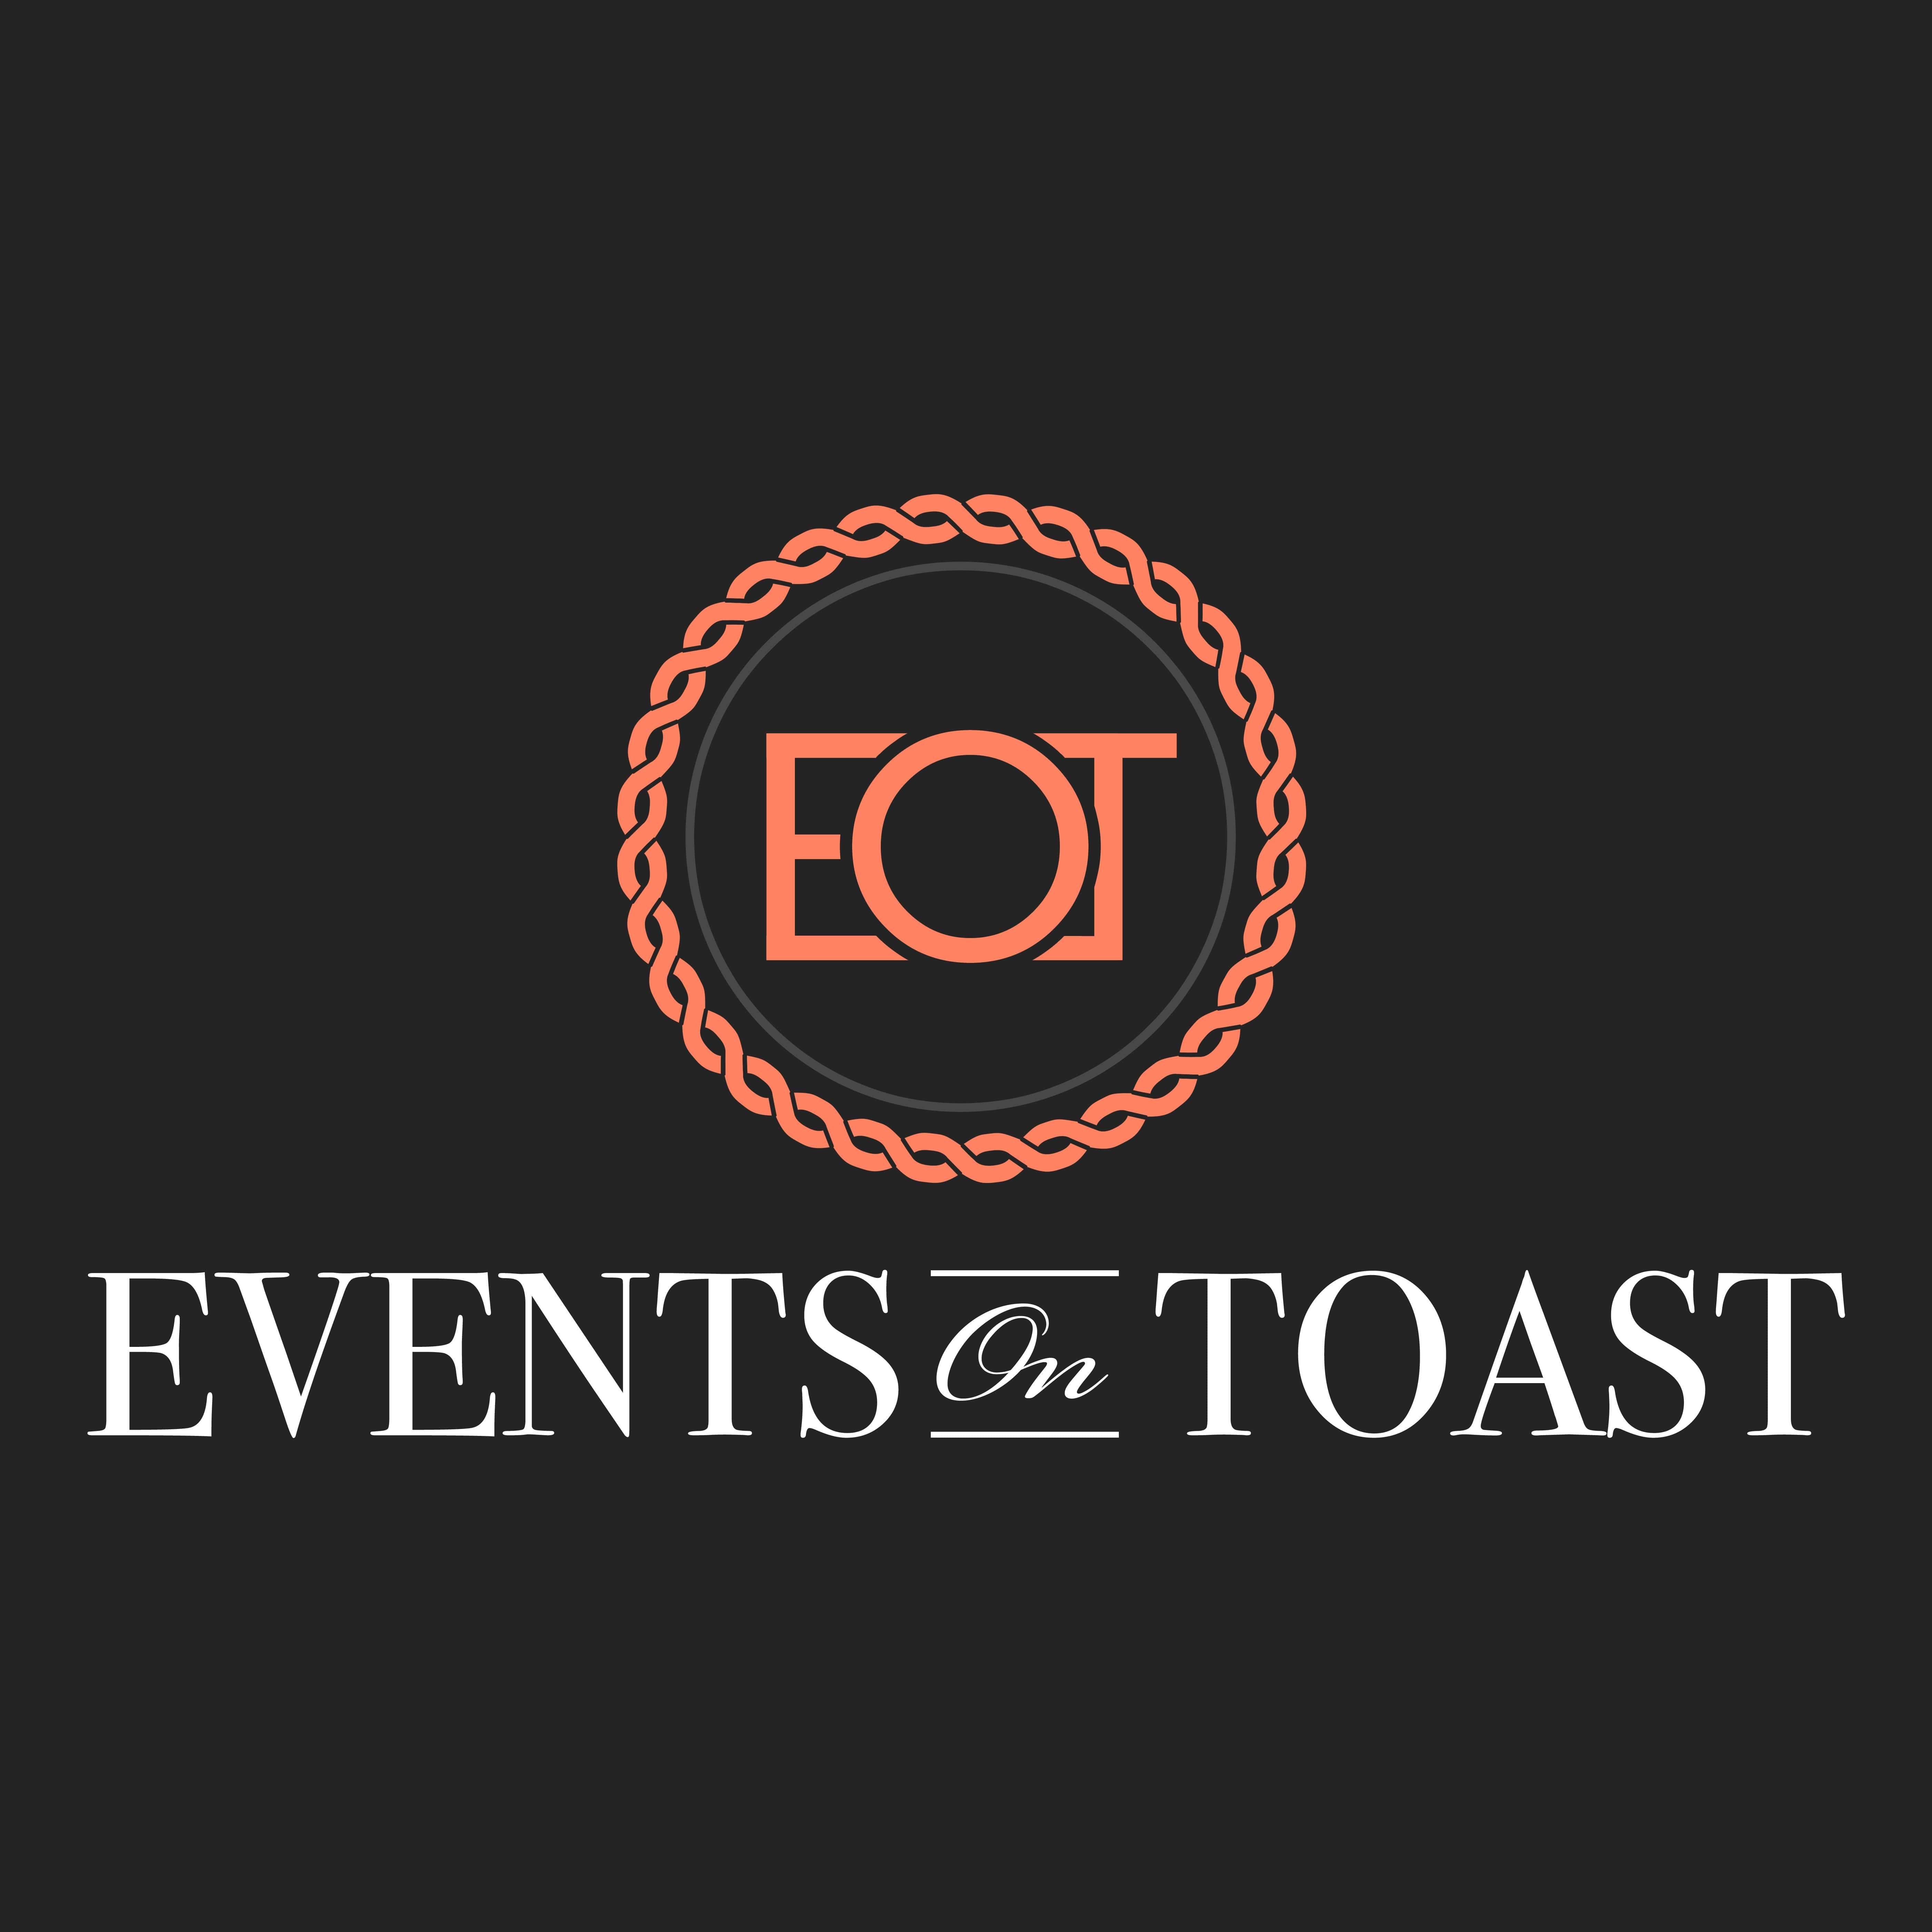 Events of Toast logo